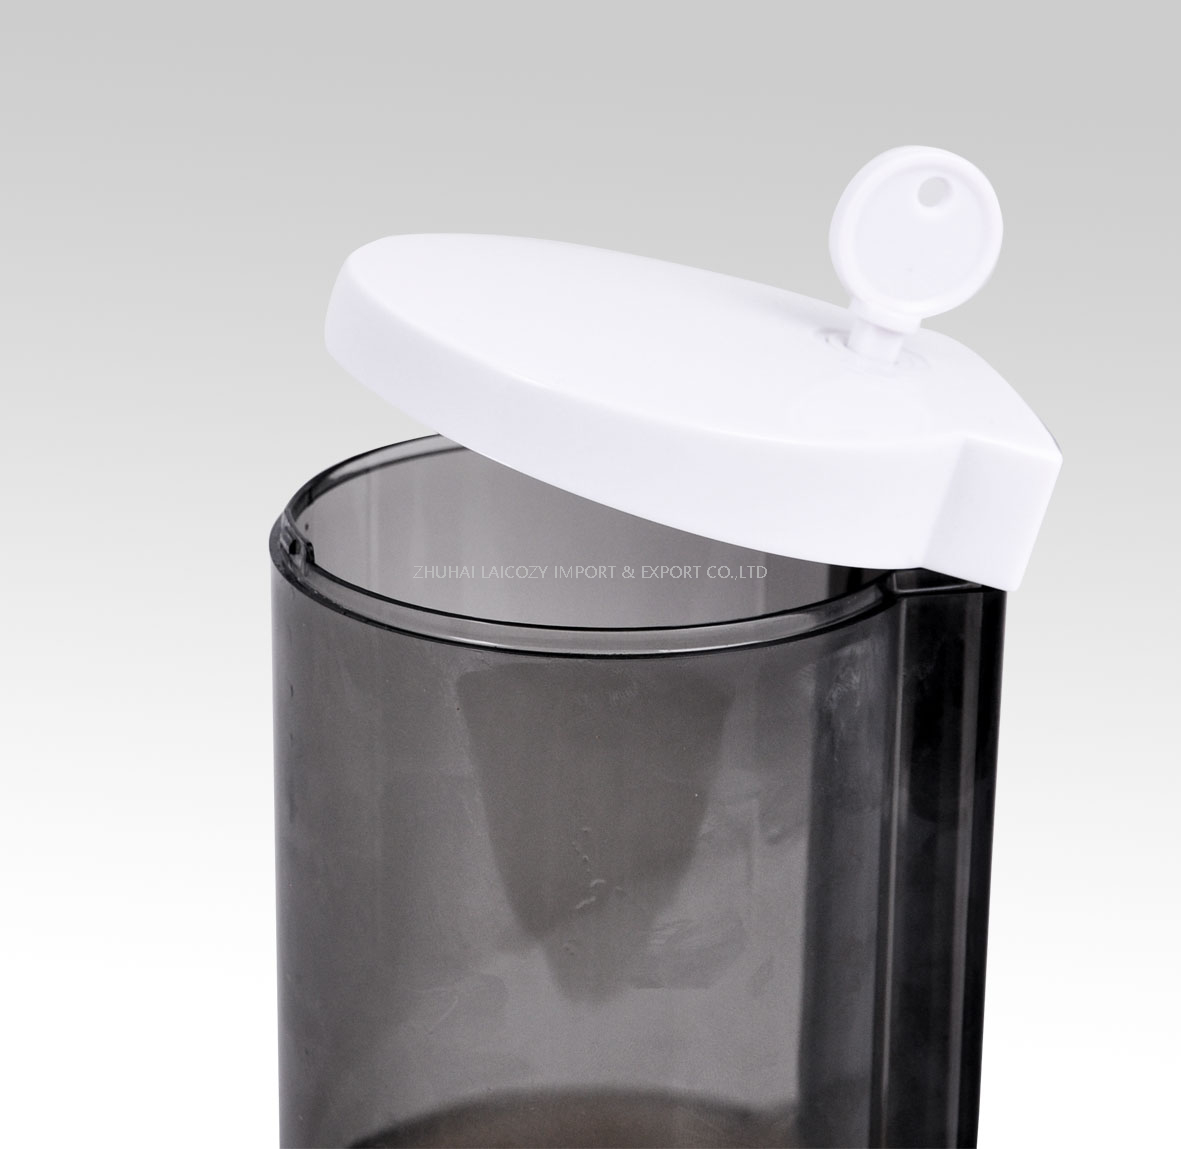 Movable Stainless Touchless Sensor Soap Sanitizer Dispenser Stand